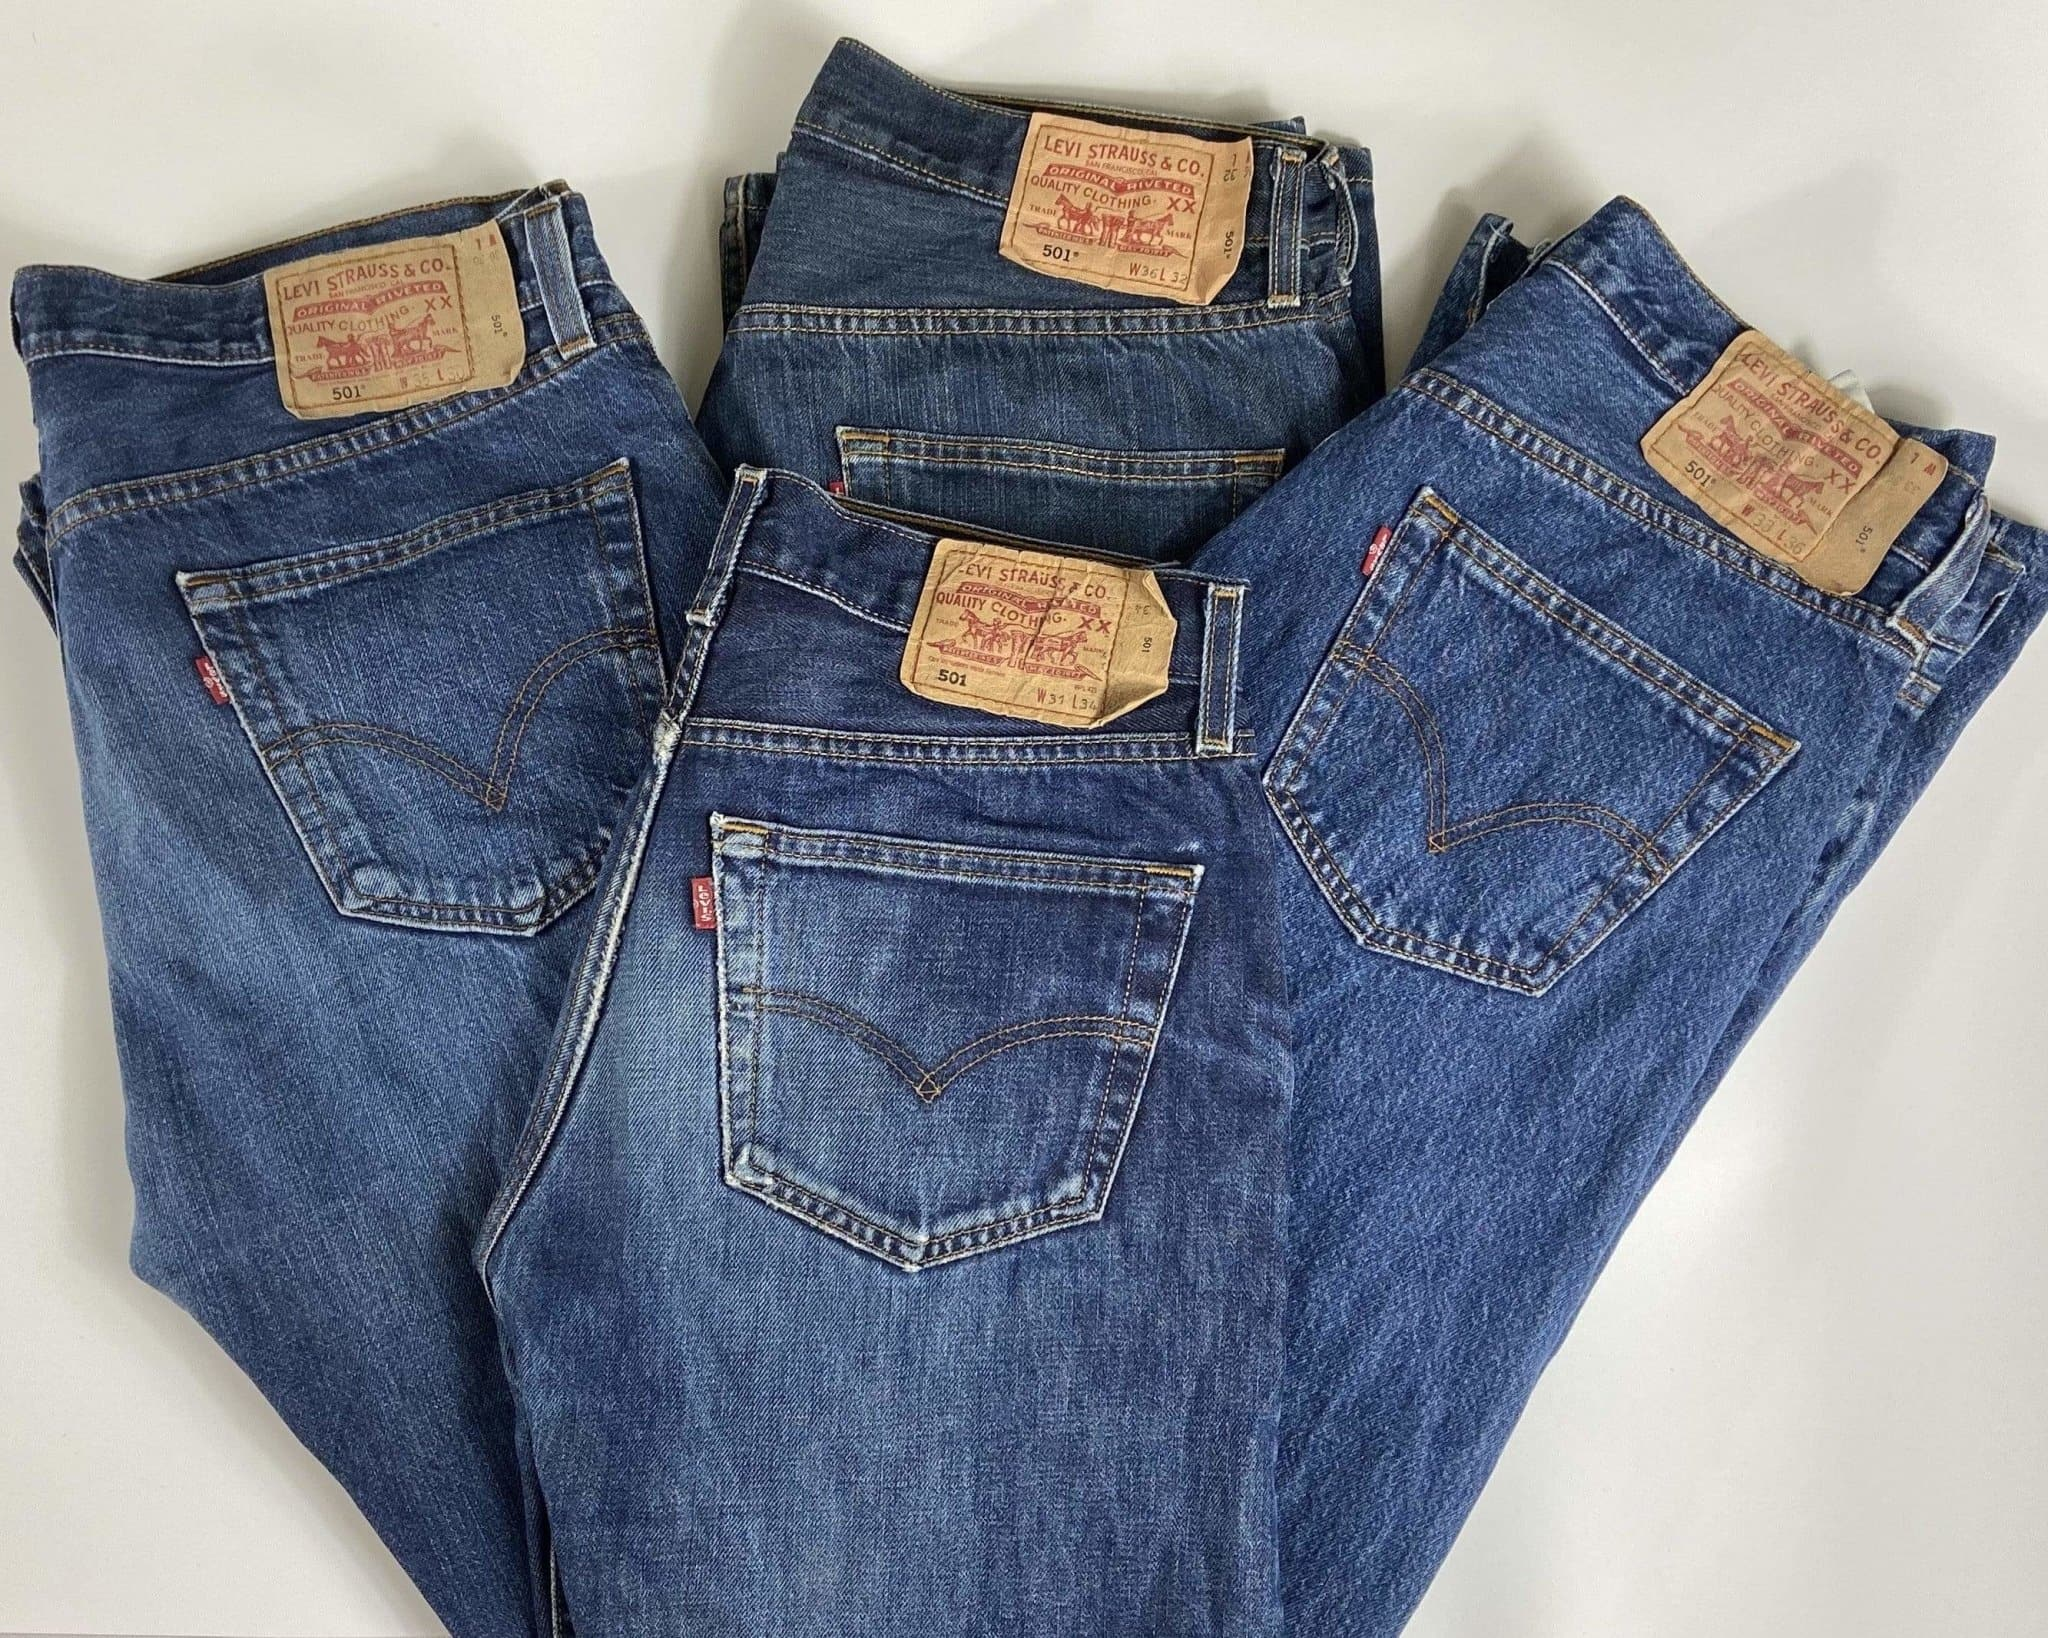 Vintage Levi's Classic 501 Jeans W36 L30 (DHLB2) - Discounted Deals UK